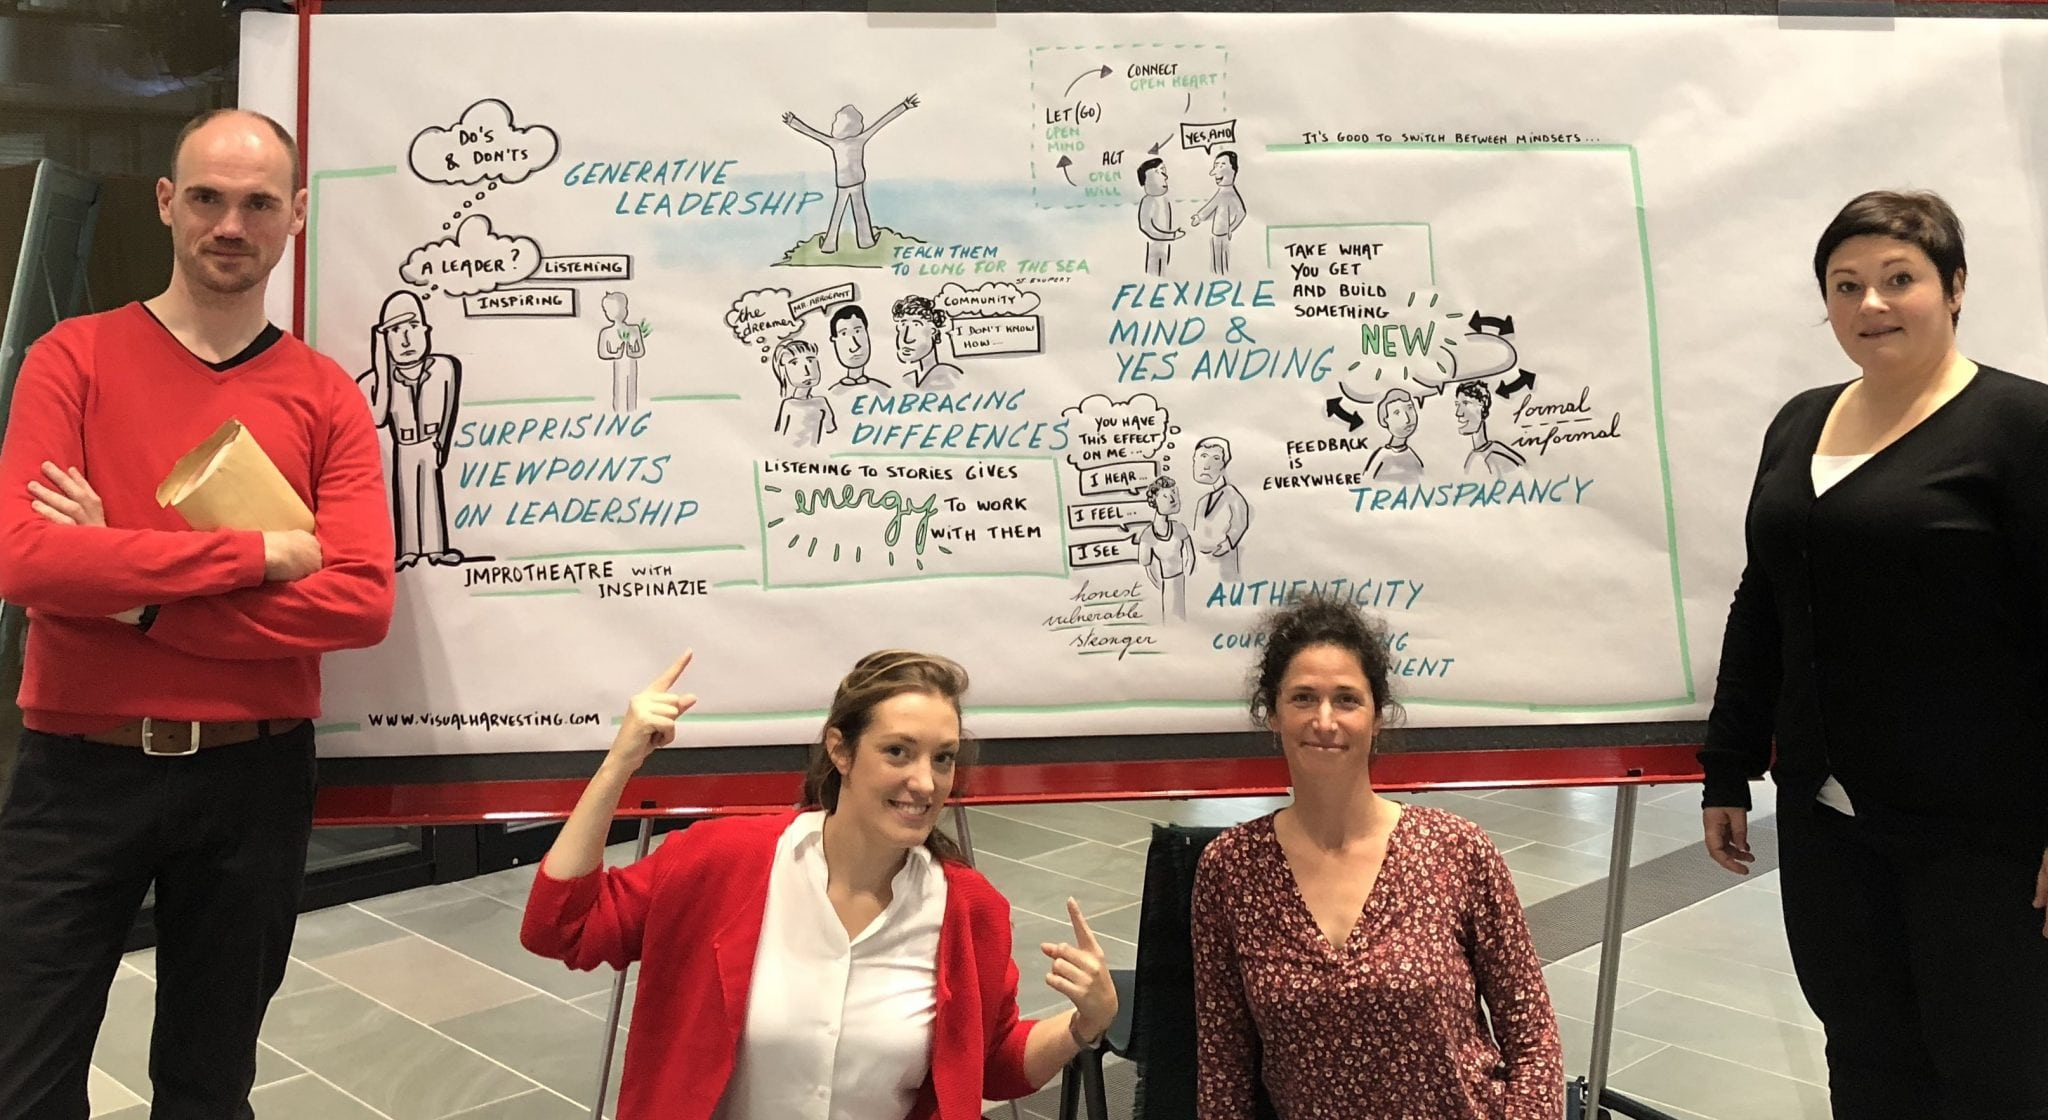 Visual Harvesting voorstelling leiderschap